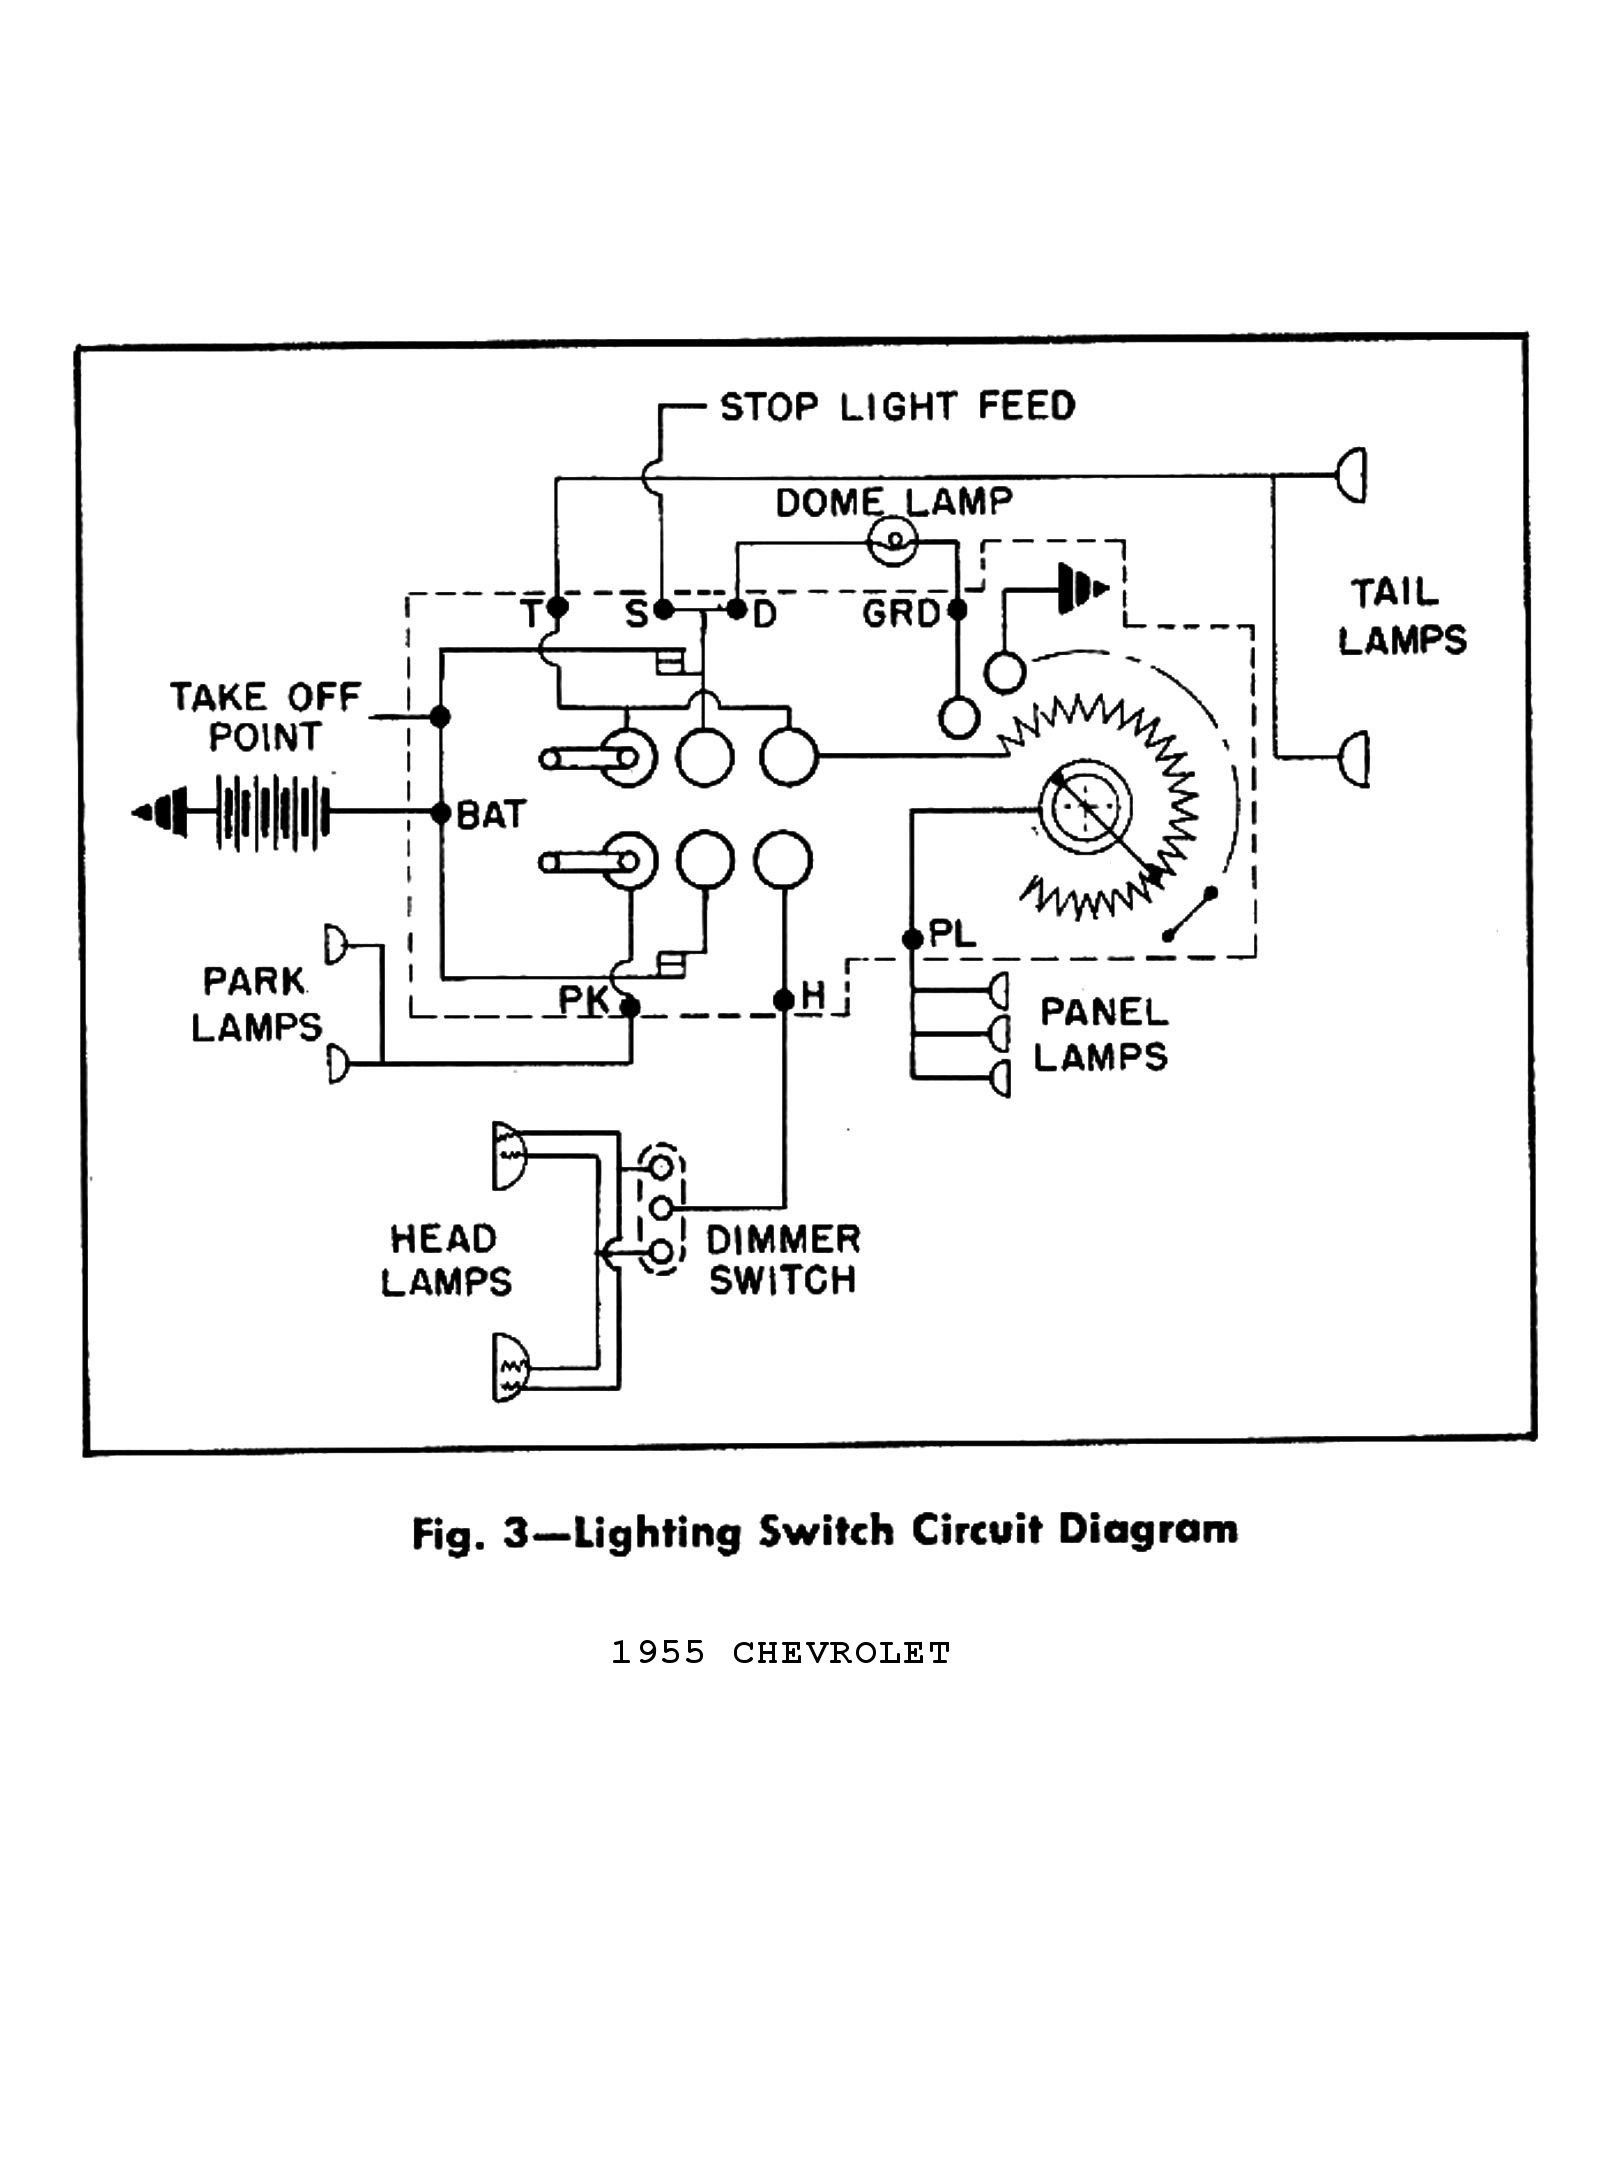 wiring diagram automatic car headlight dim switch system real auto dimmer switch wiring diagram leviton auto [ 1600 x 2164 Pixel ]